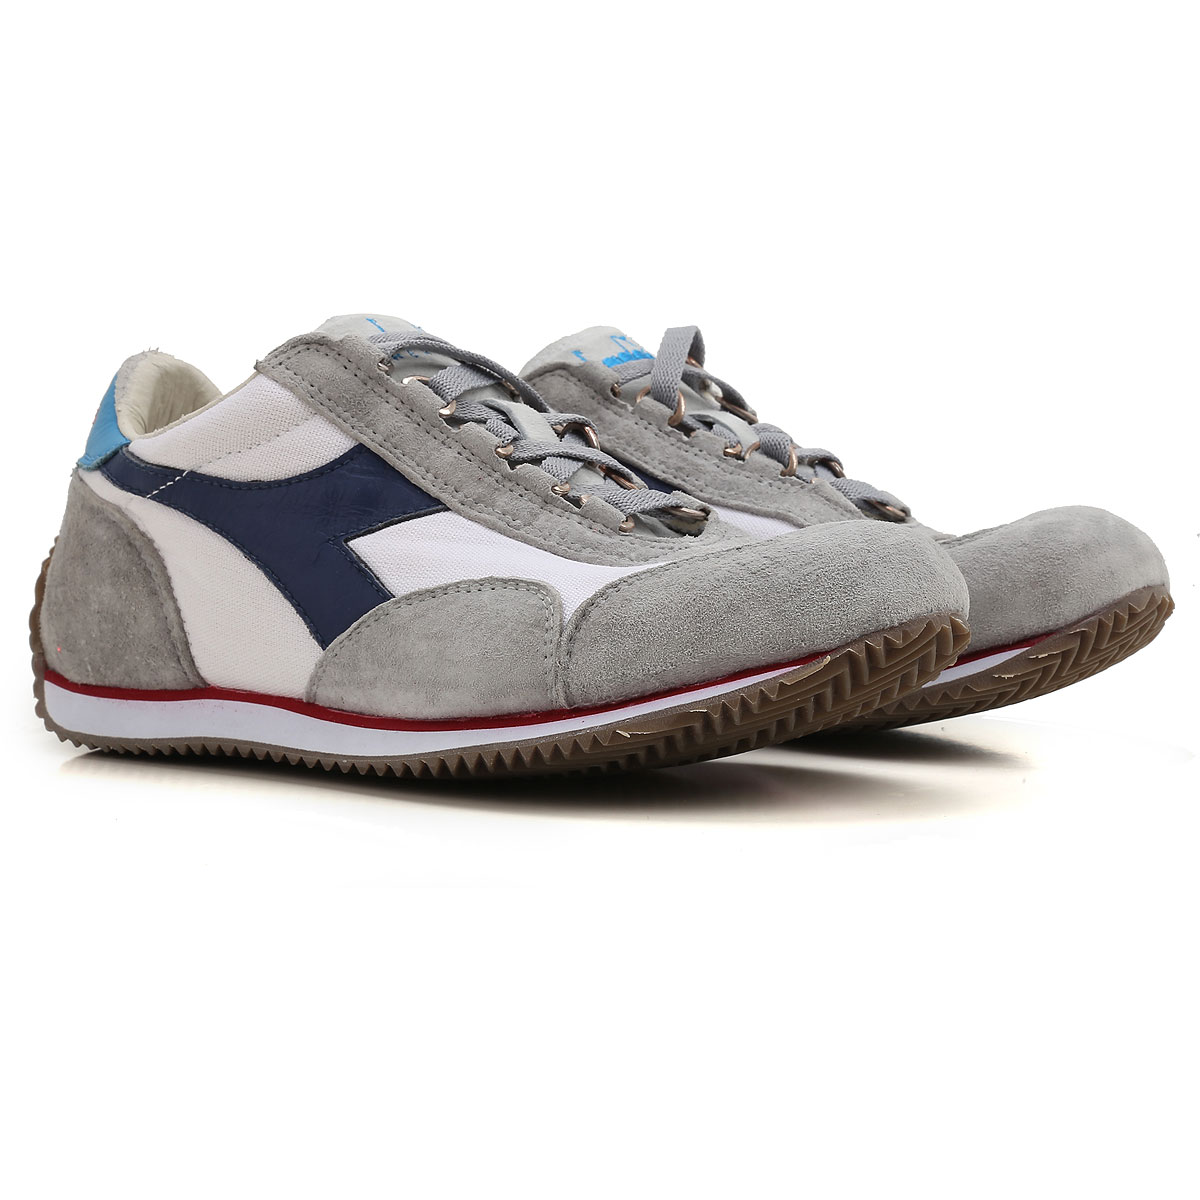 Womens Shoes Diadora Style code 156988c6682woman 397125